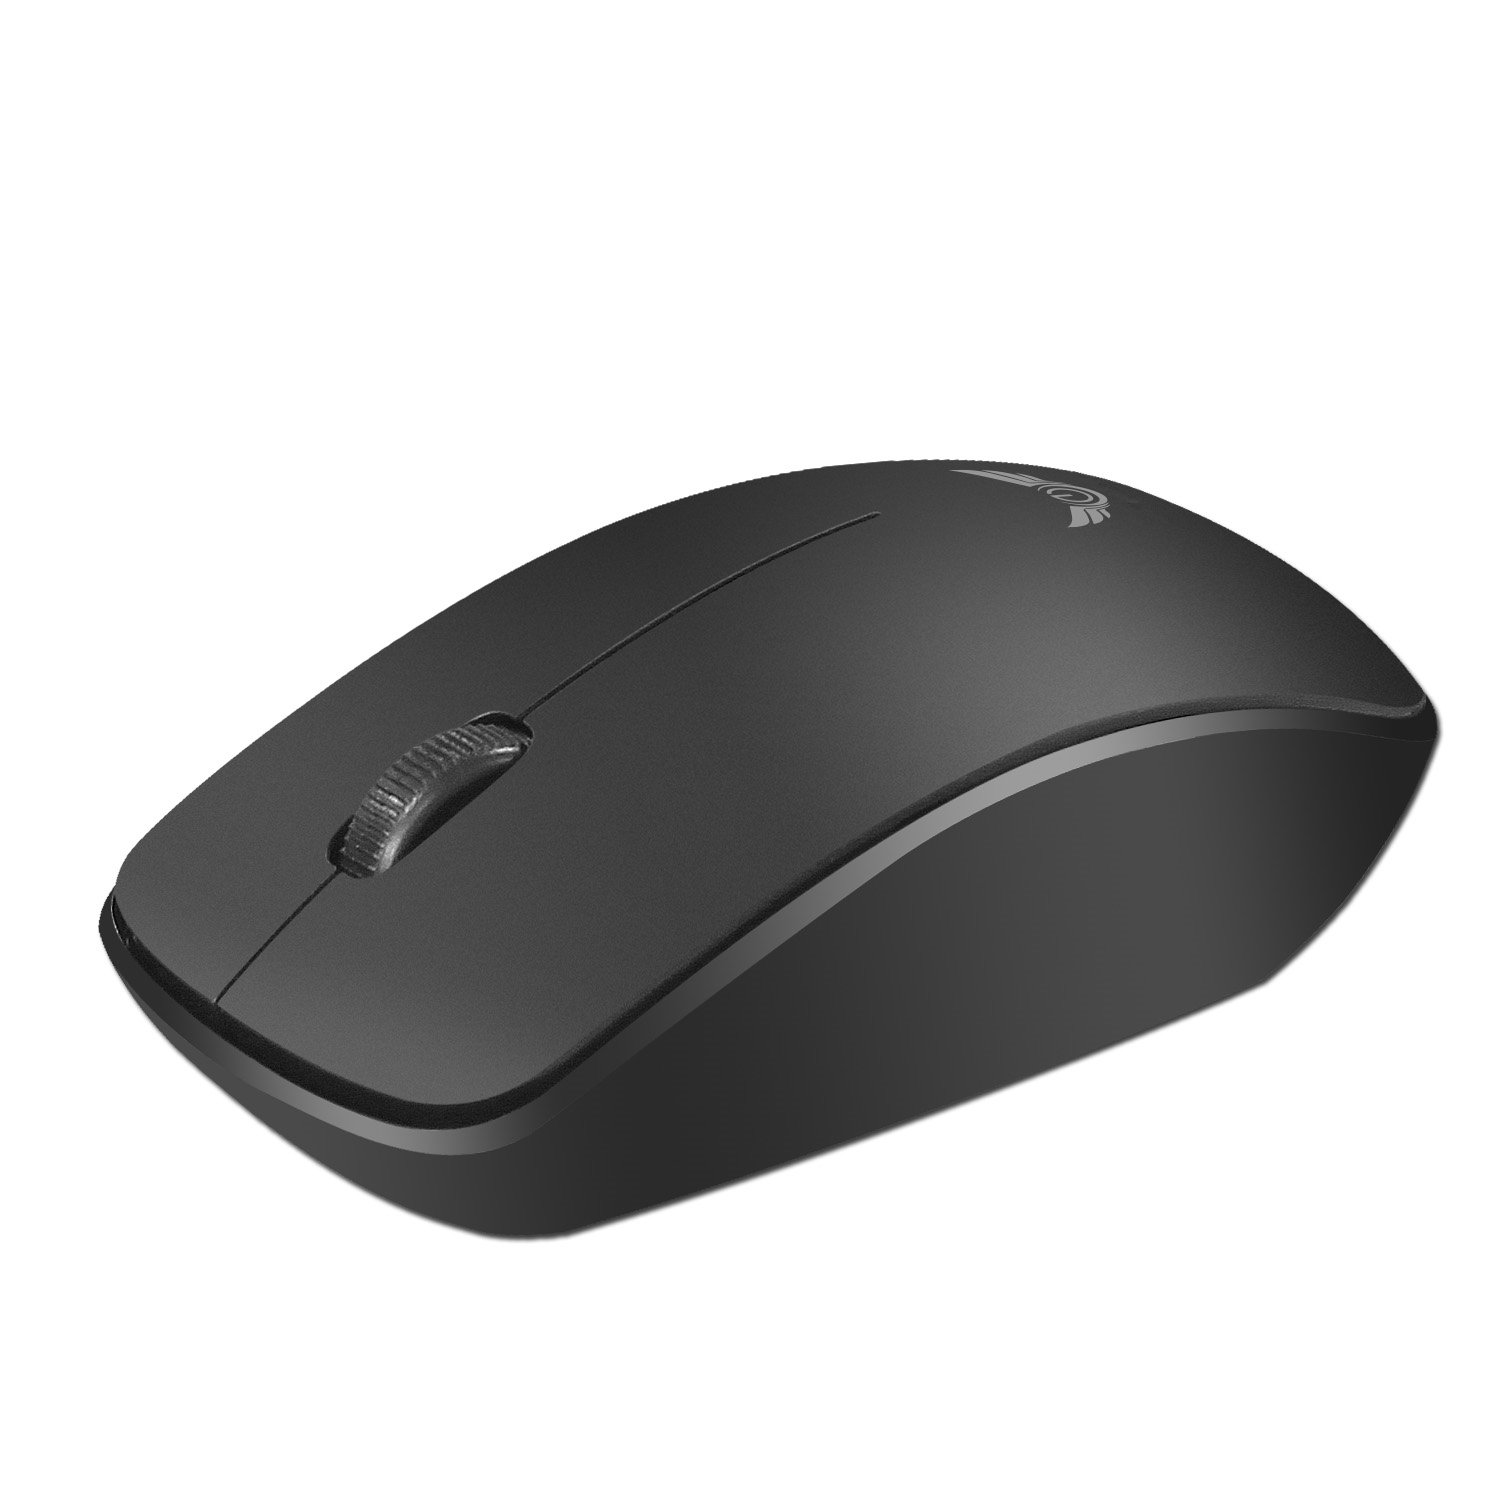 3-Buttons Ultra Light Portable Optical Wireless Mouse with usb Nano Receiver, High Speed Precision with 1600 DPI Level, Compatible with Notebook, Computer, Laptop, Dell, Apple and Macbook Pro. (Black)